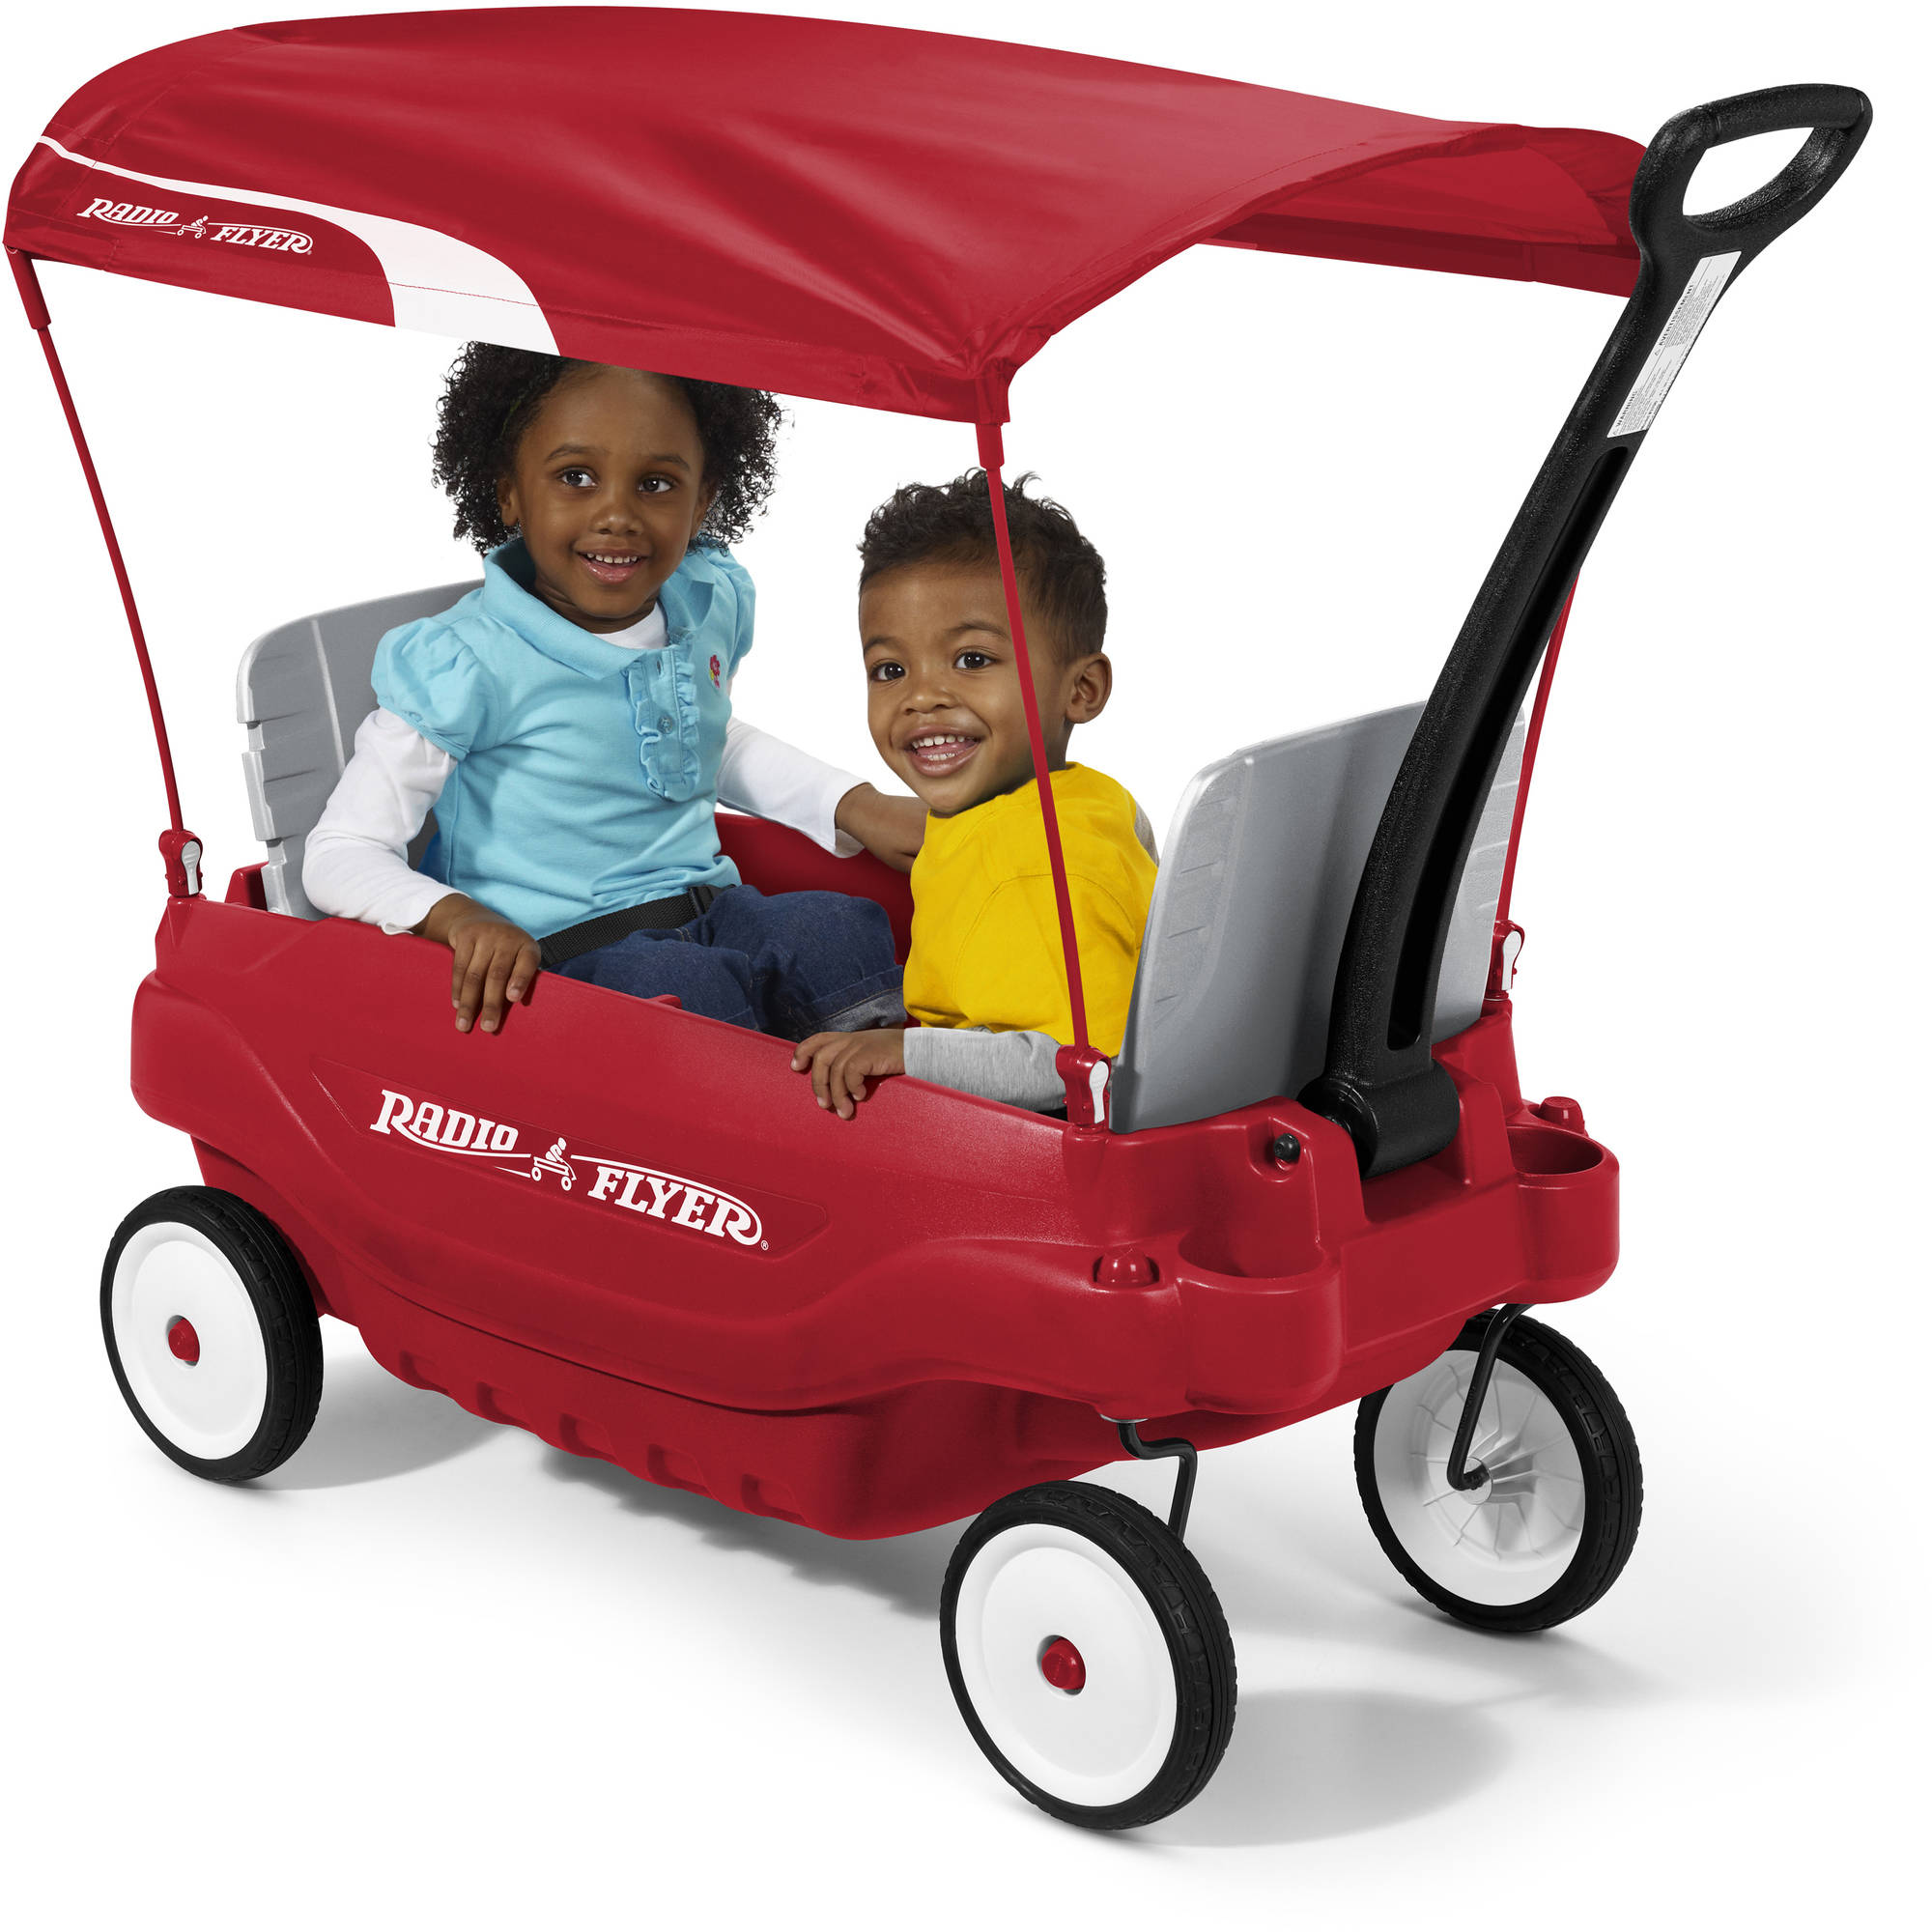 Radio Flyer Deluxe Family Wagon With Canopy Folding Seats